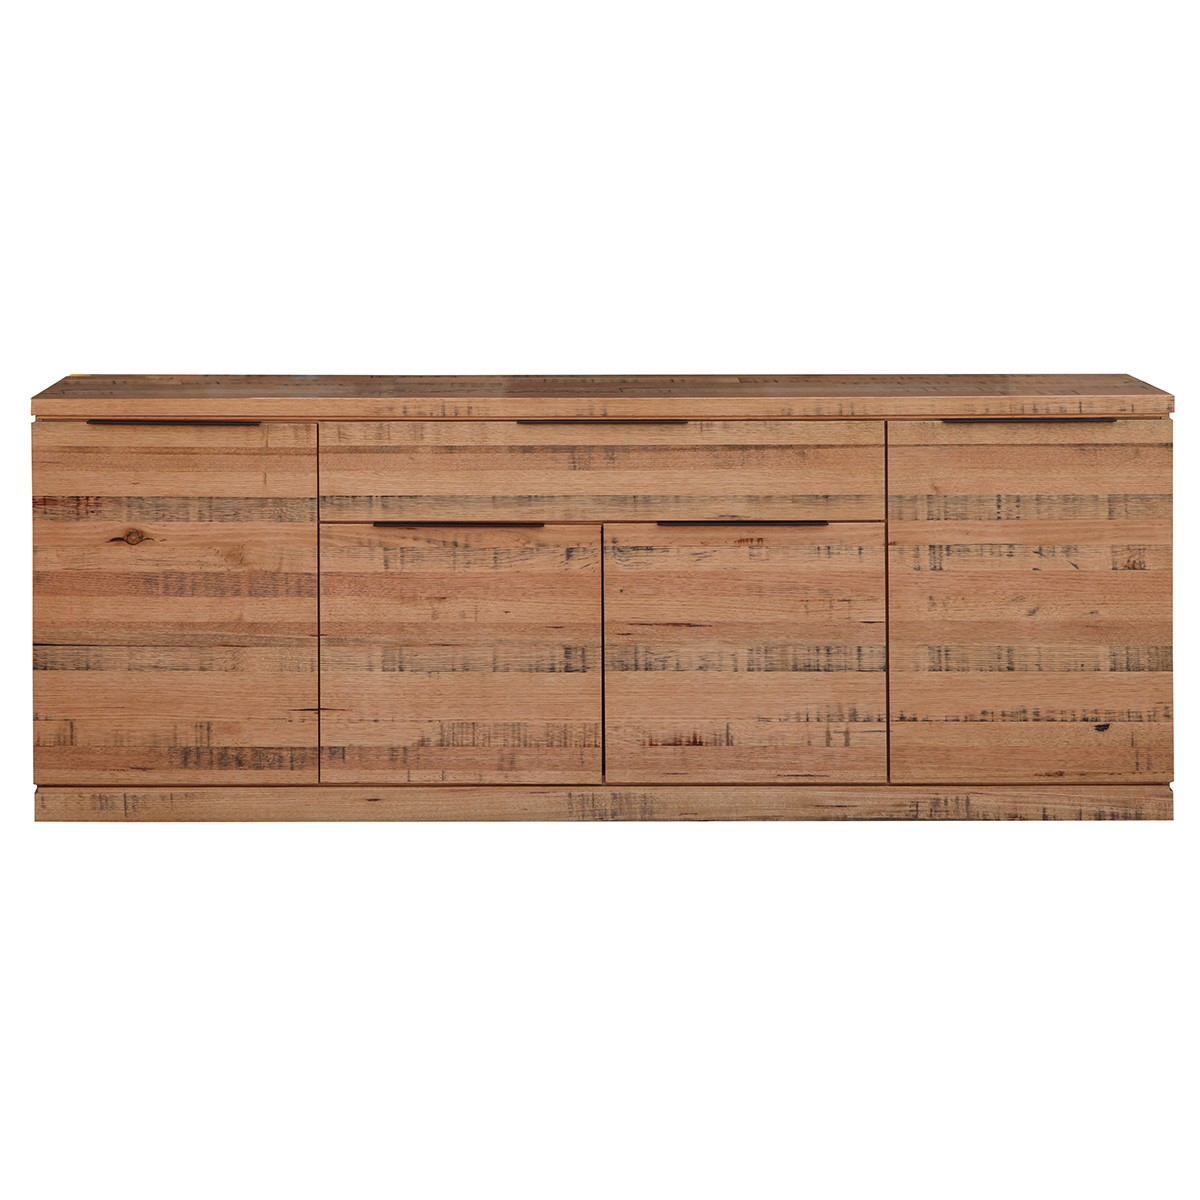 Ariol Victoria Ash Timber Buffet Table, 200cm